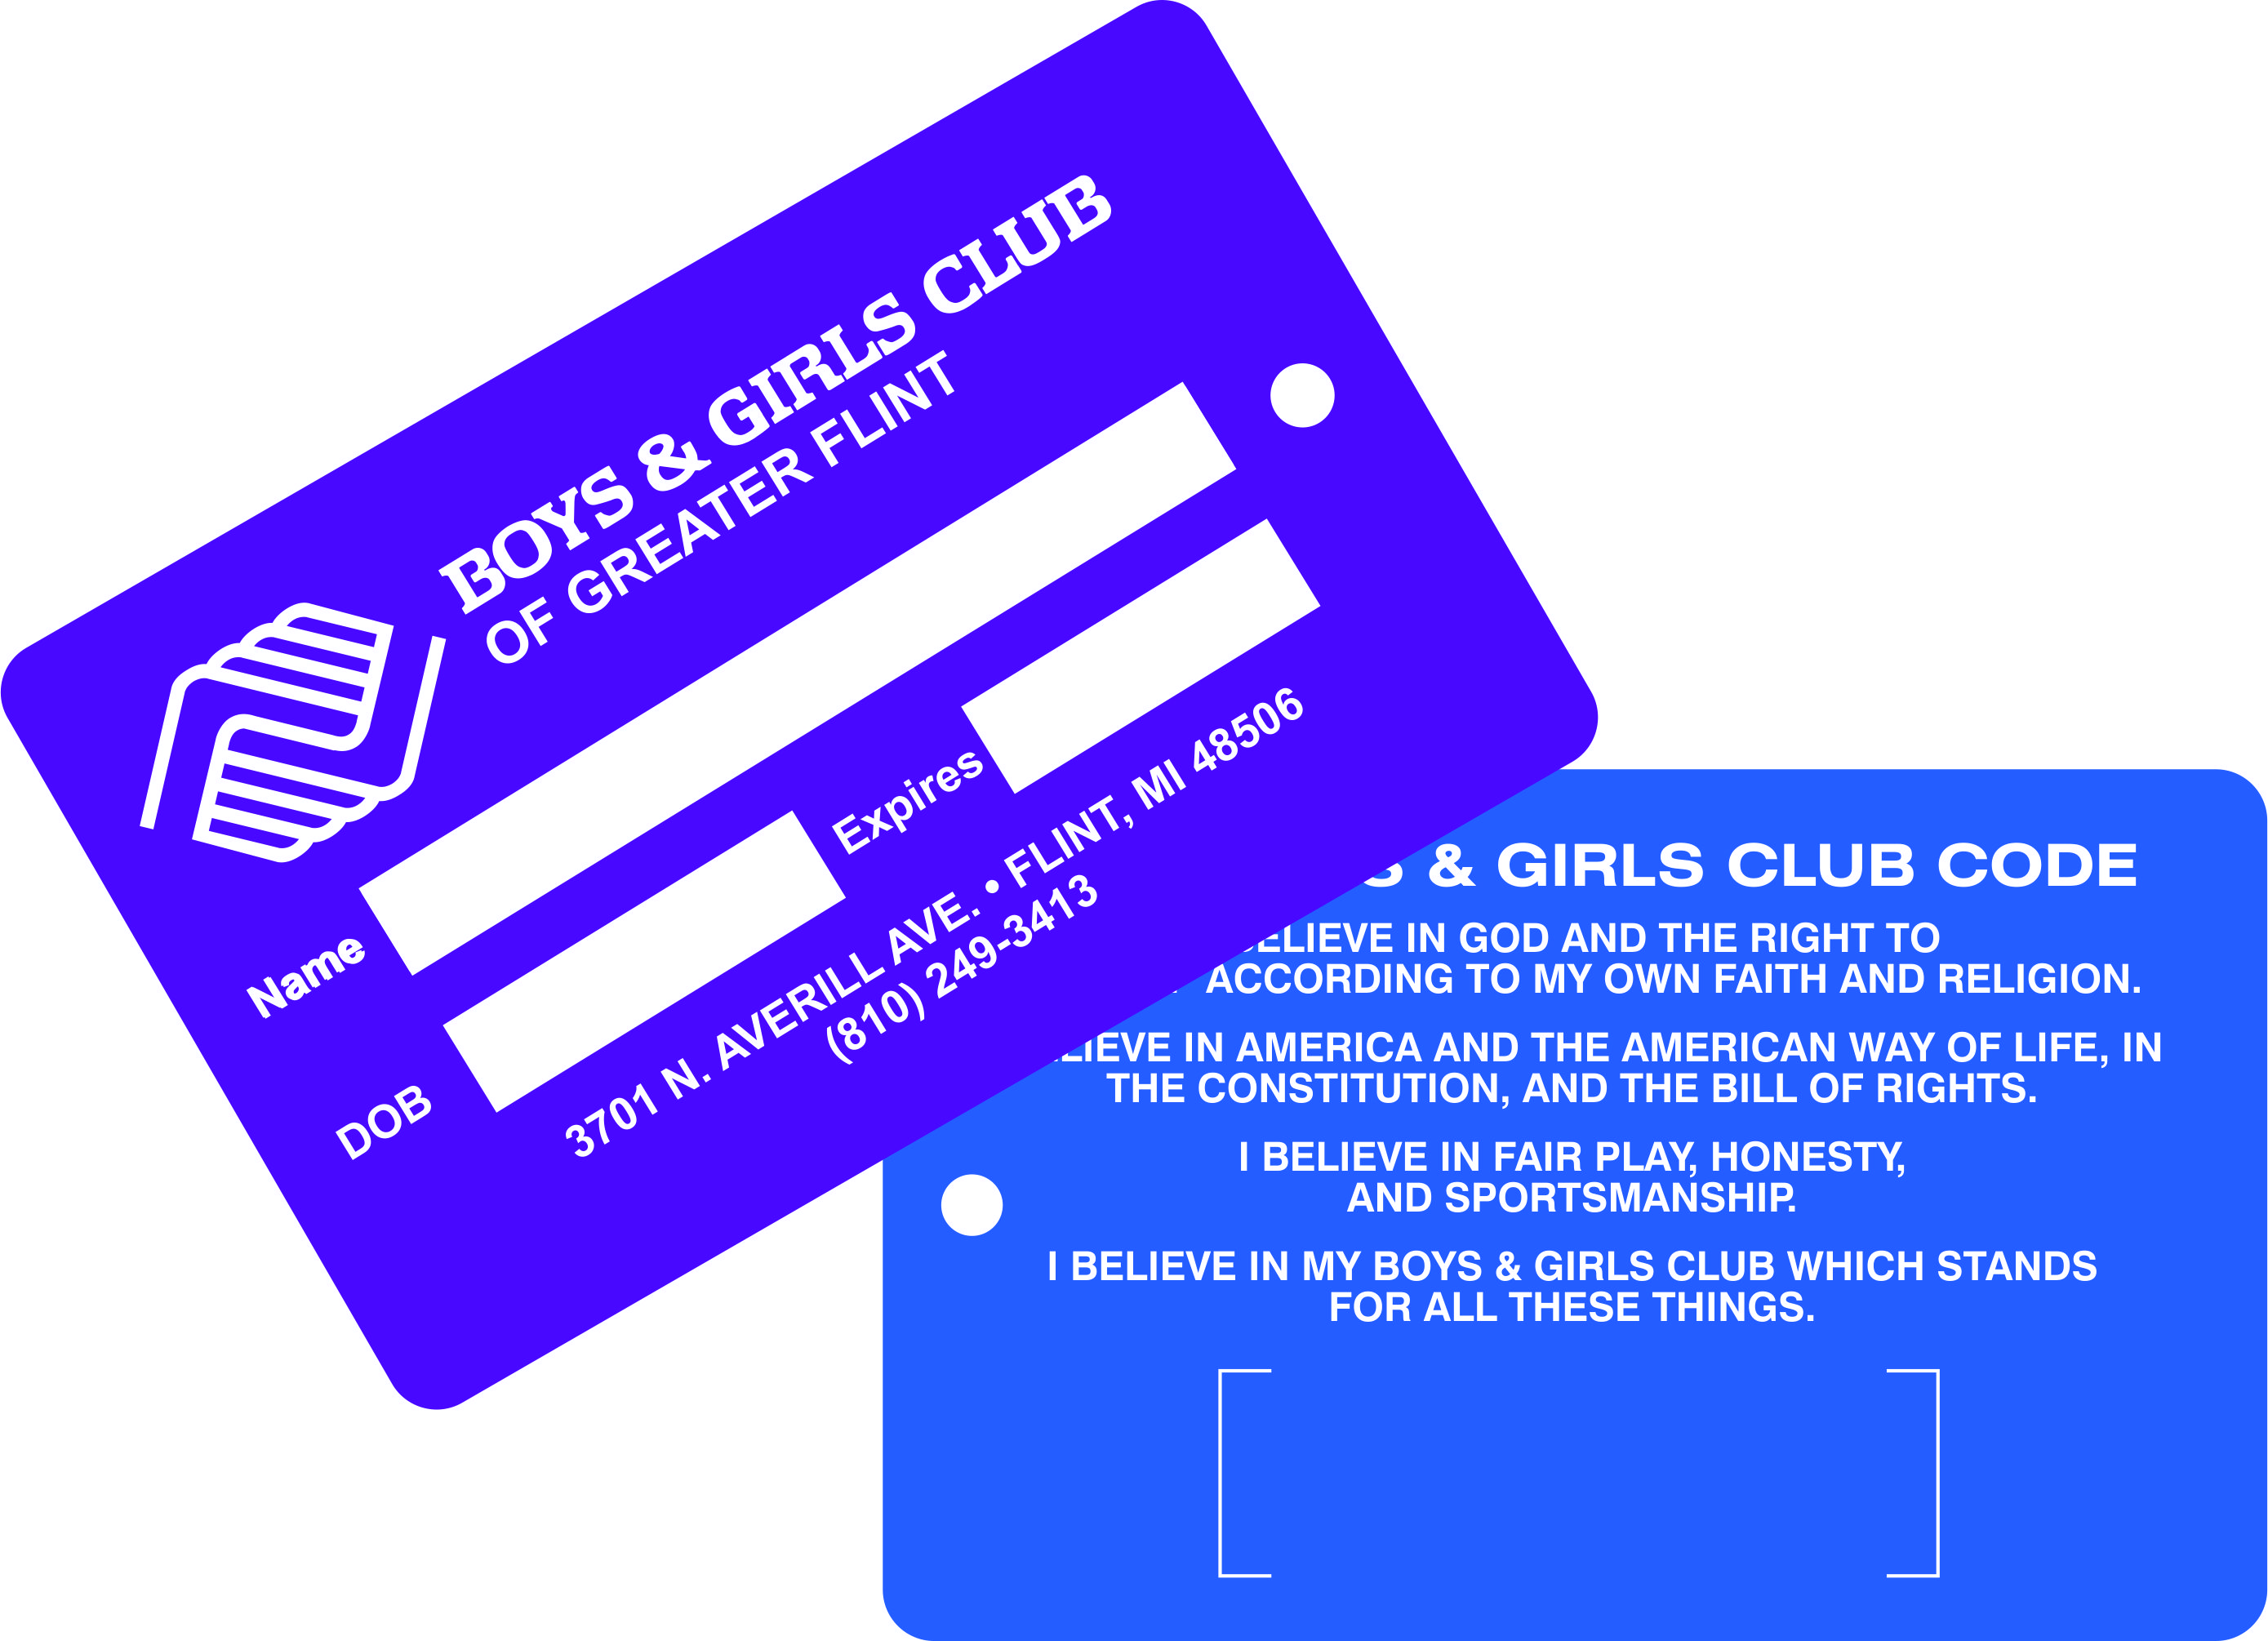 Boys & Girls Club Cards